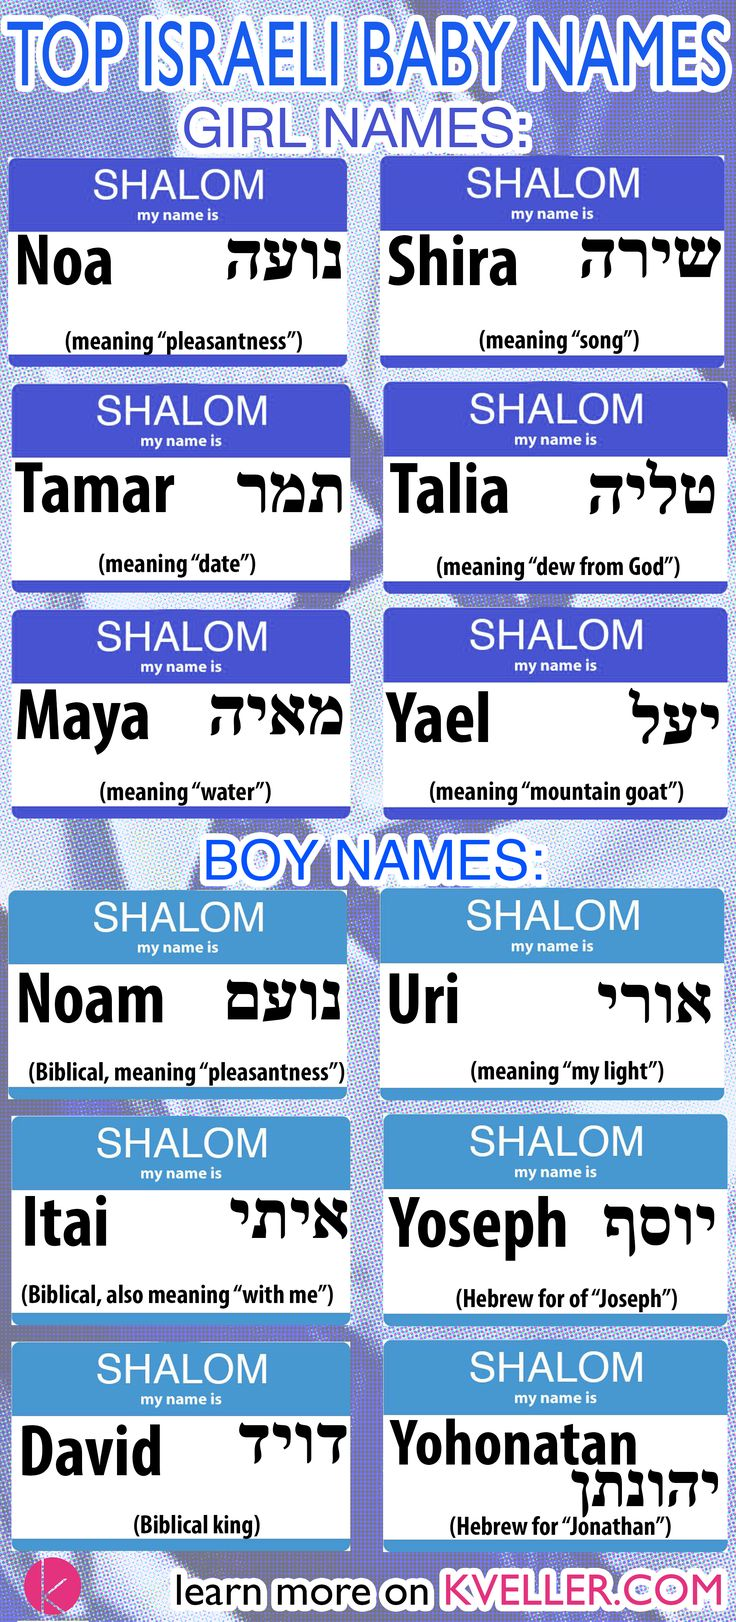 Looking for some baby name inspiration? Check out these popular Israeli baby names.